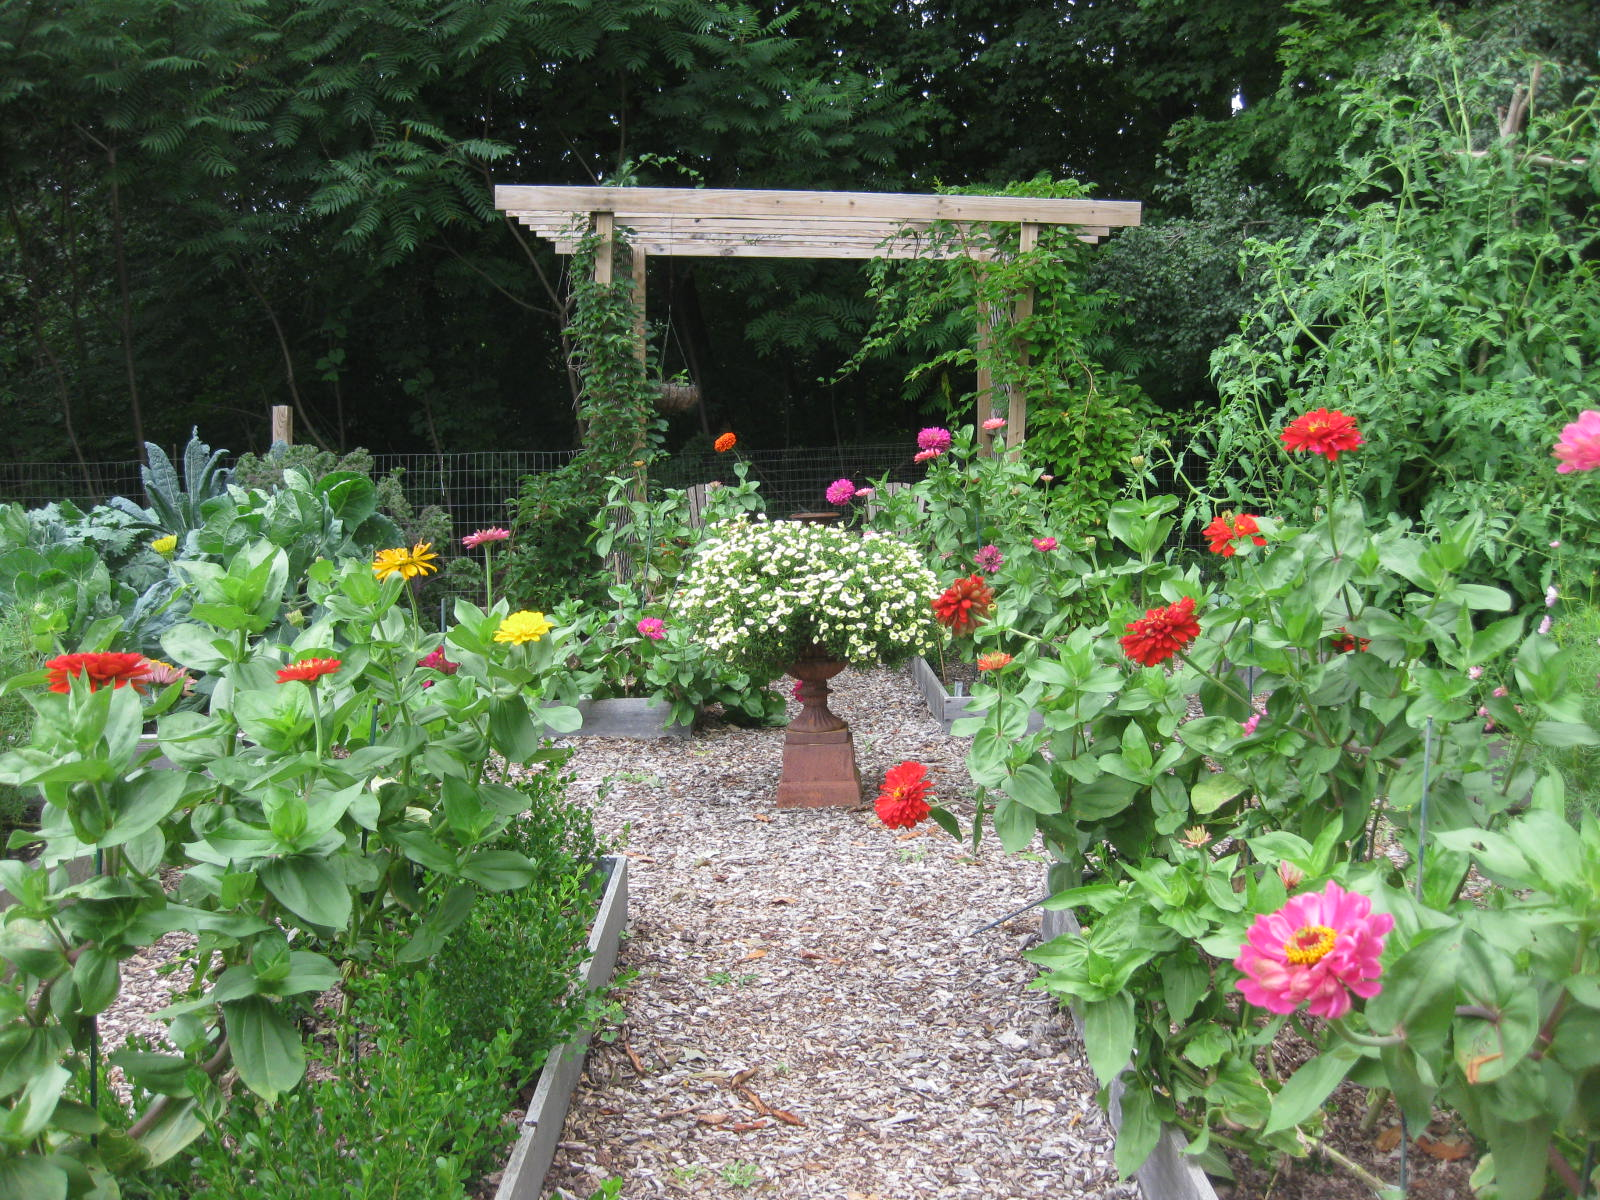 PHOTO GALLERY: A Walk in the Kitchen Garden